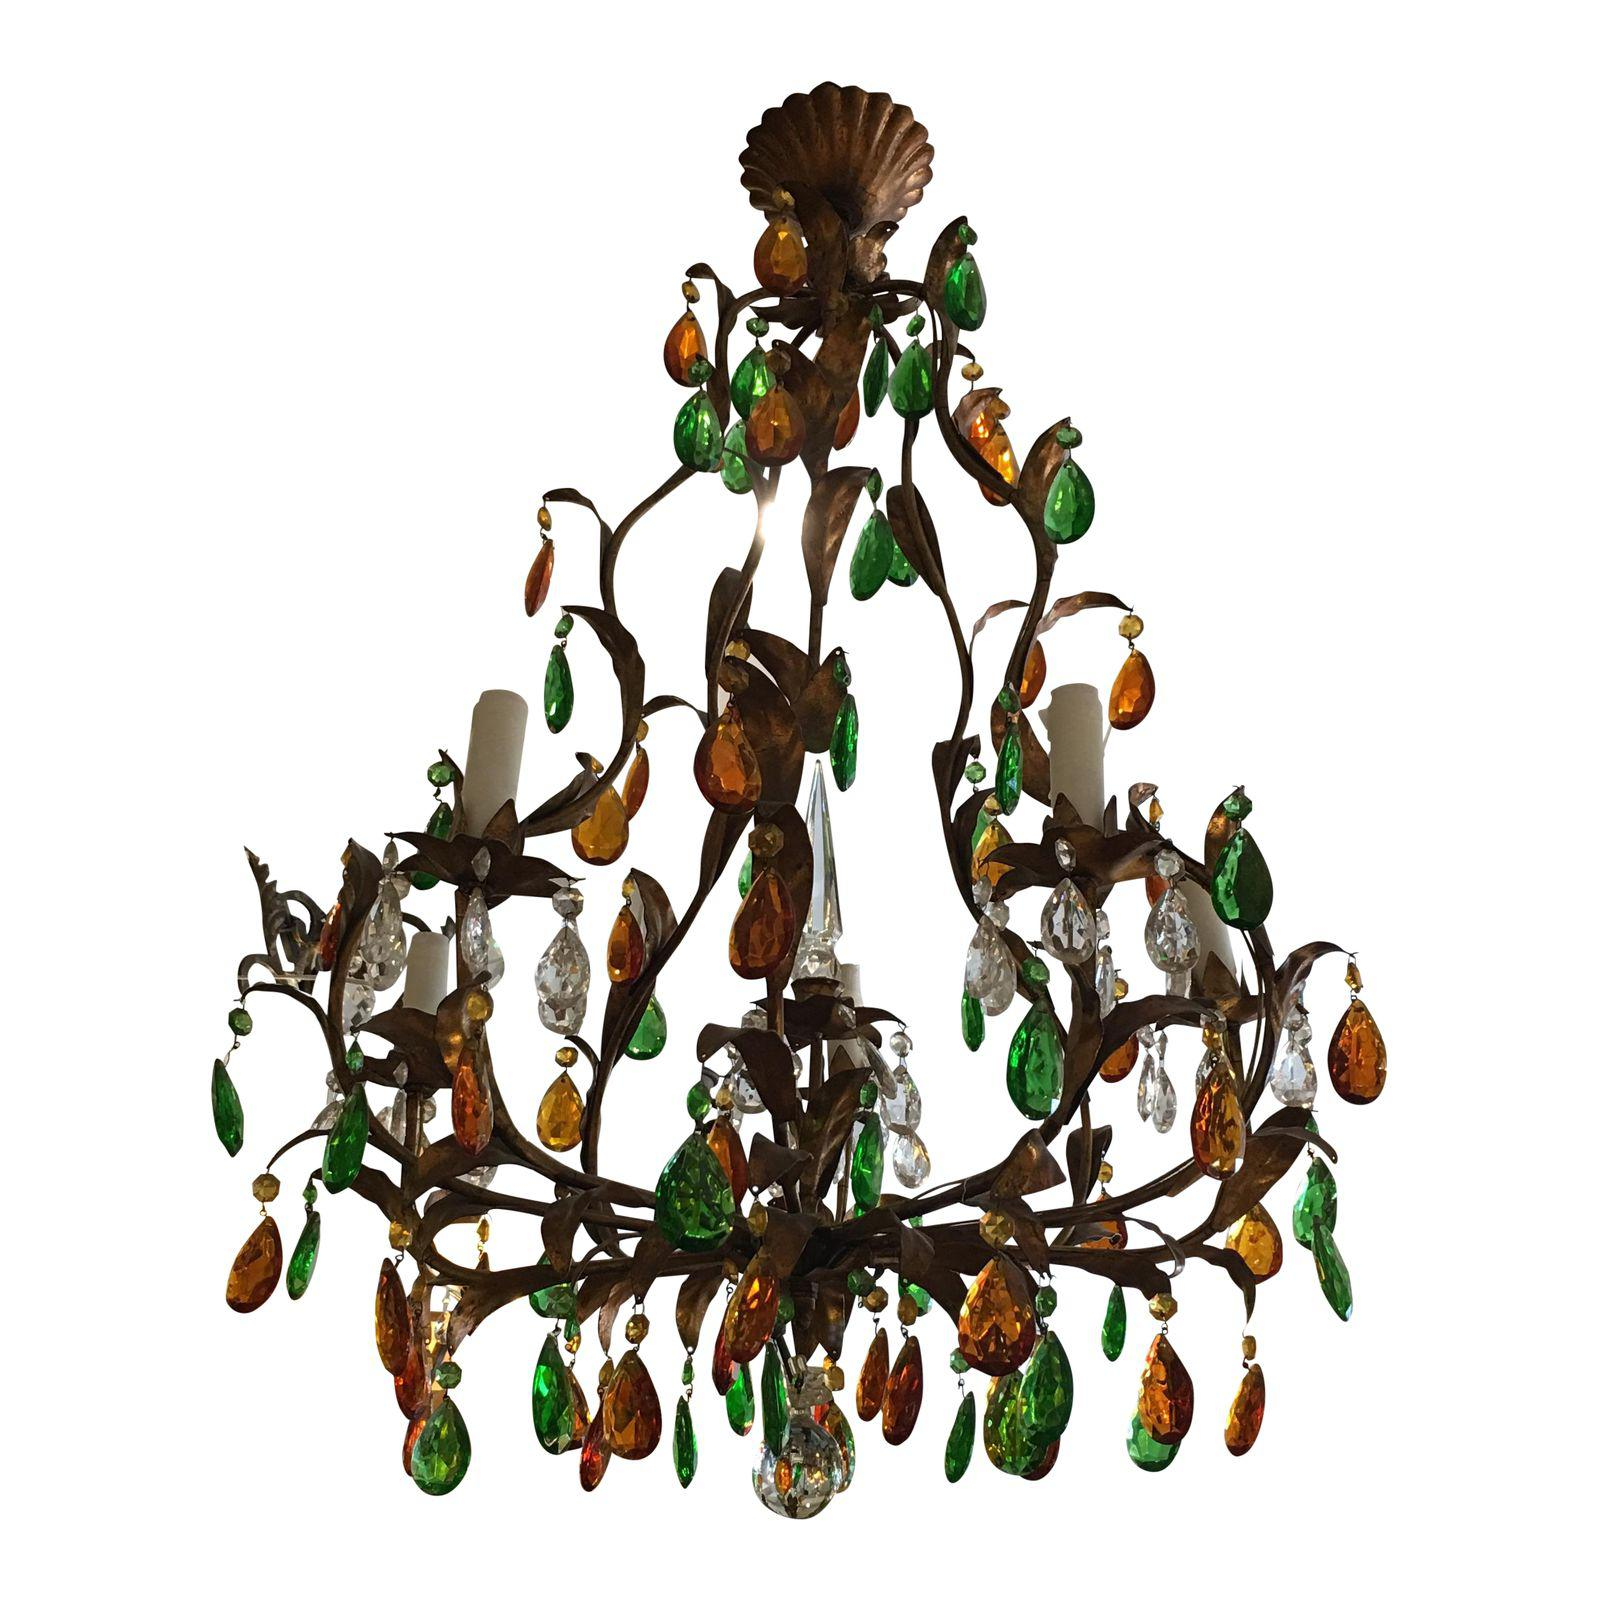 statement in will nordal stunning by of wooden pin for home a make this chunky green room hundreds approx and features pinterest beaded chandelier the beads any from weeks brand danish